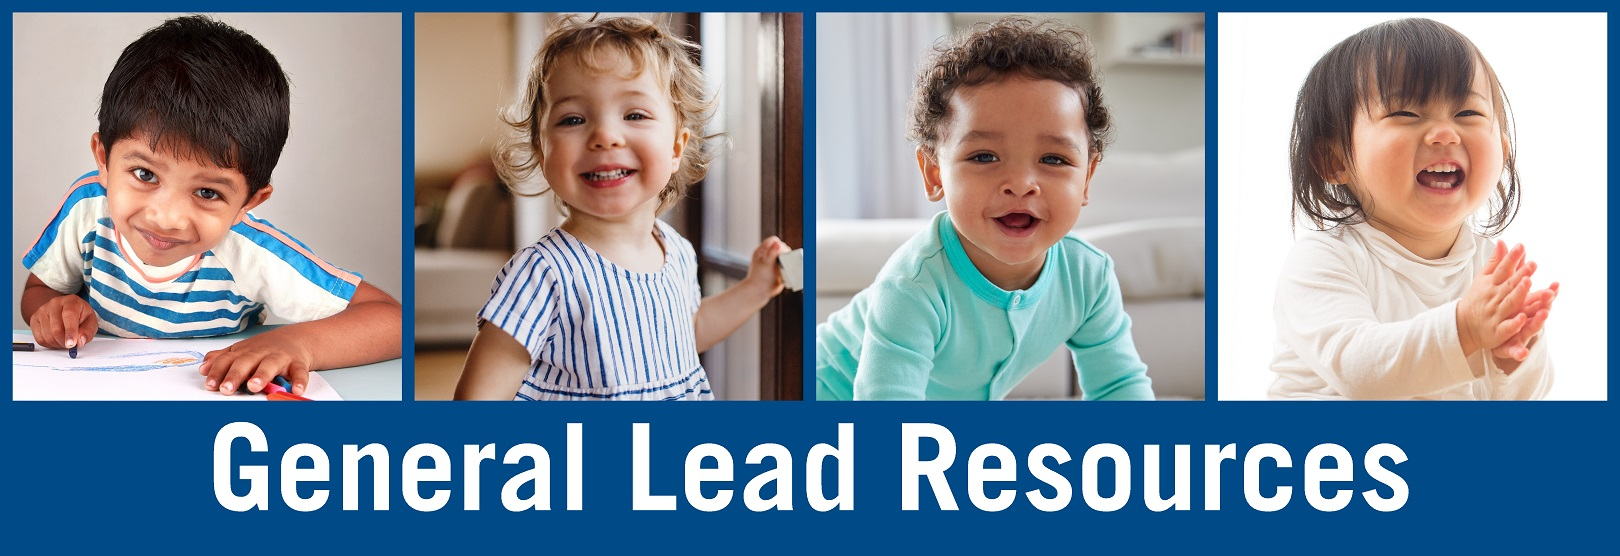 Lead-Safe Toolkit for Home-Based Child Care: General Lead Resources